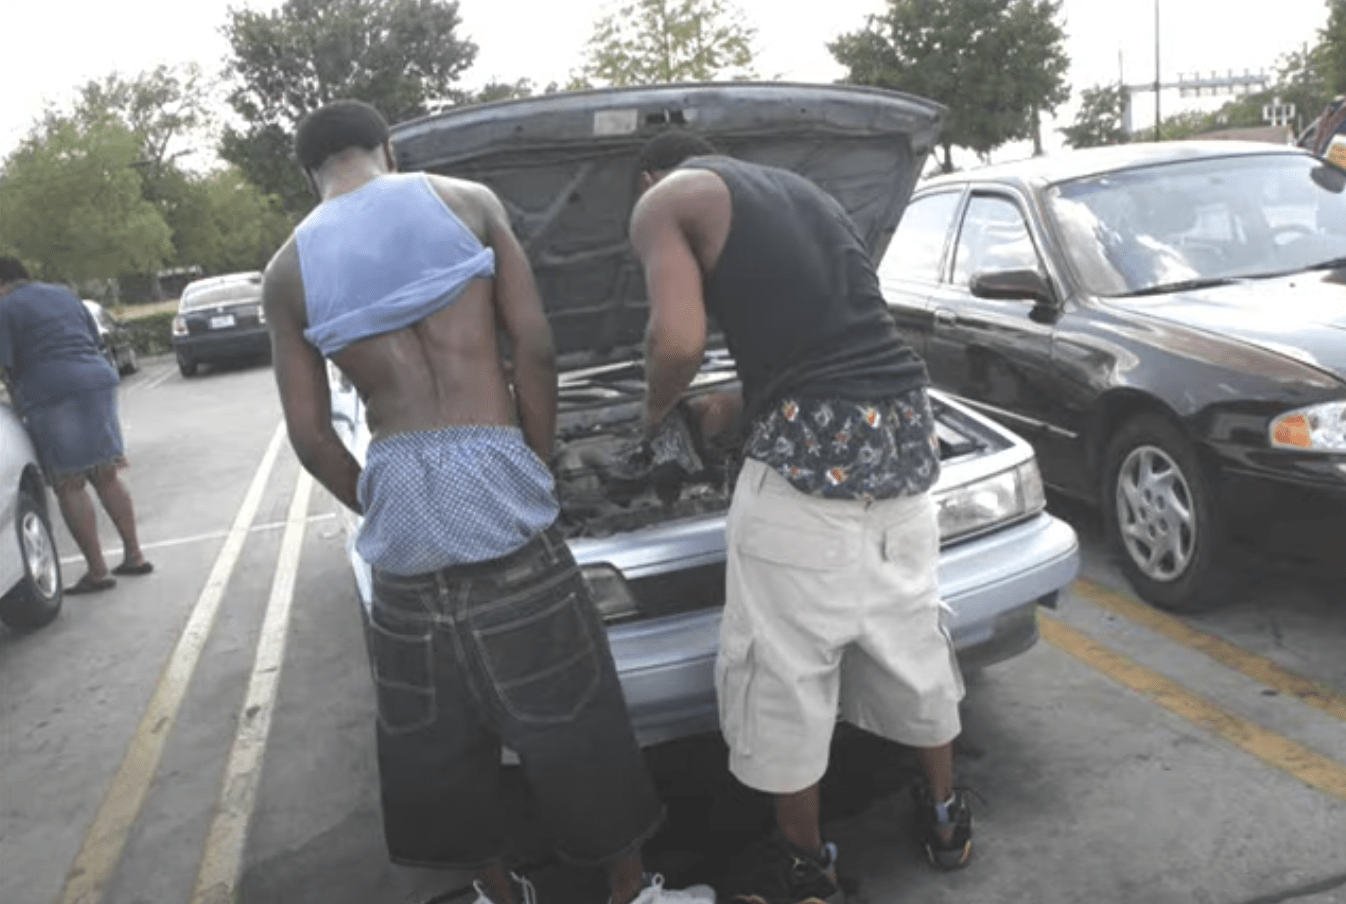 Florida city moves to repeal law against sagging pants (op-ed)